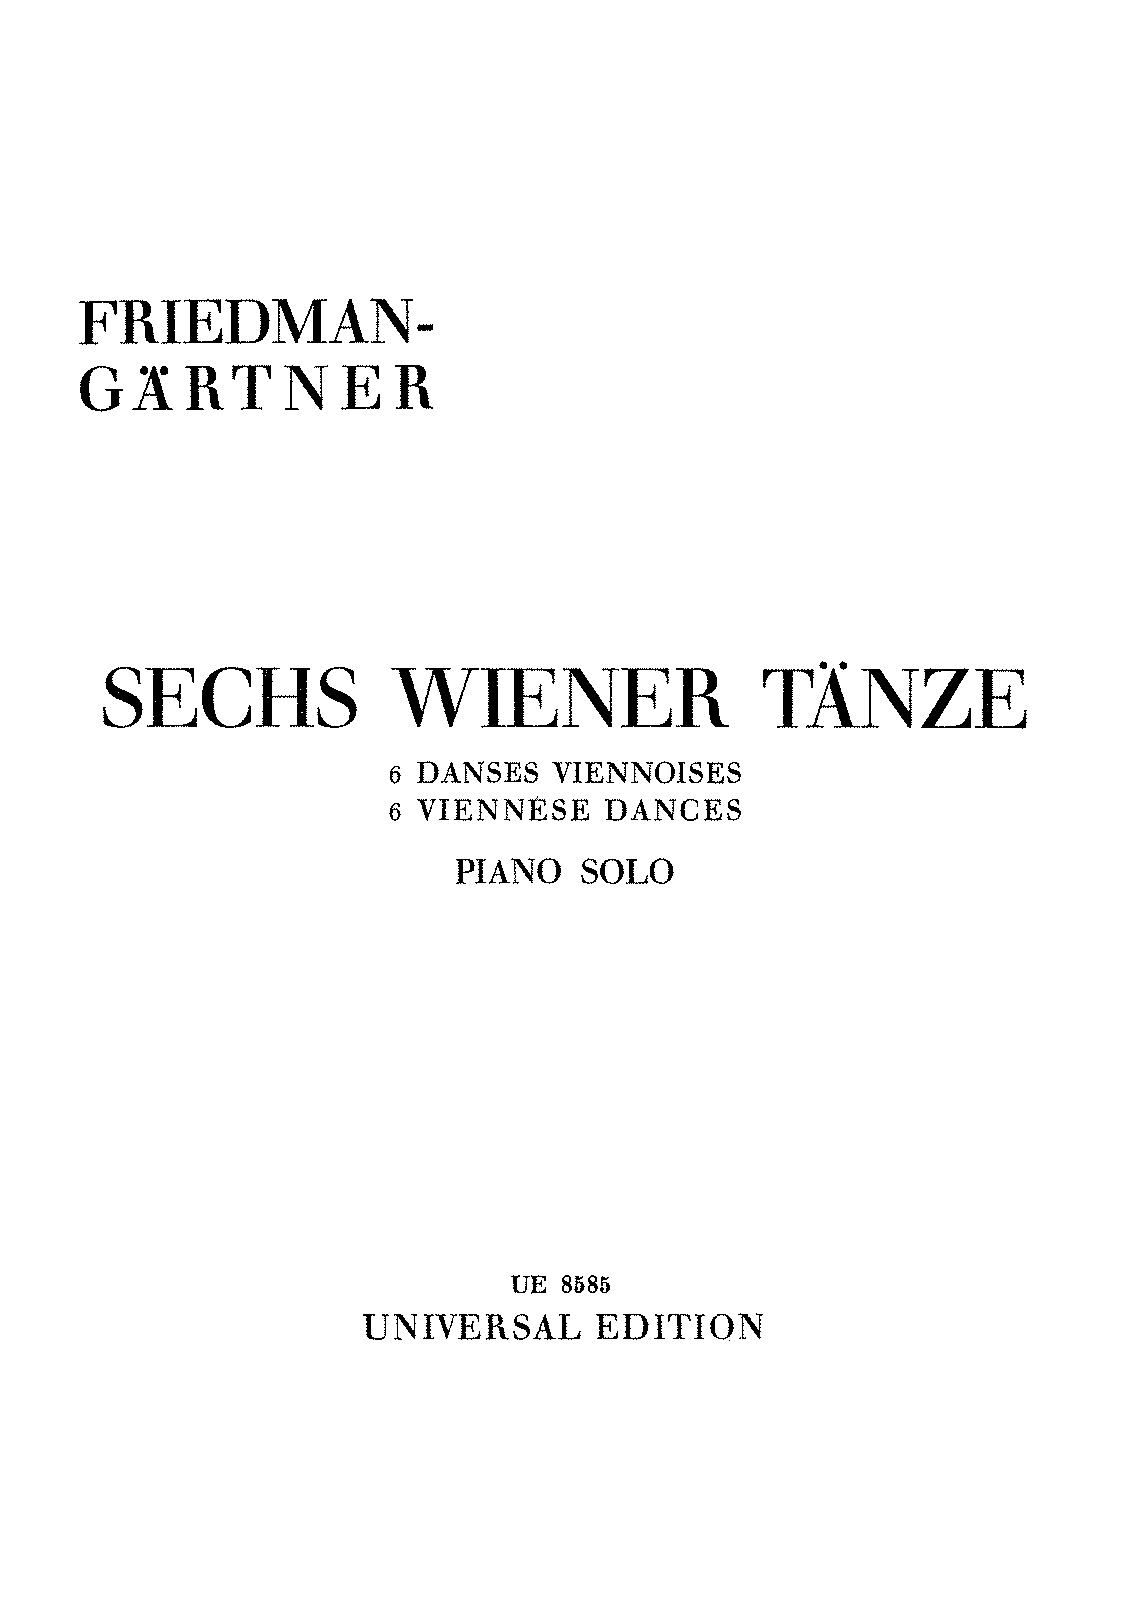 Friedman-Gartner - 6 Viennese Dances.pdf